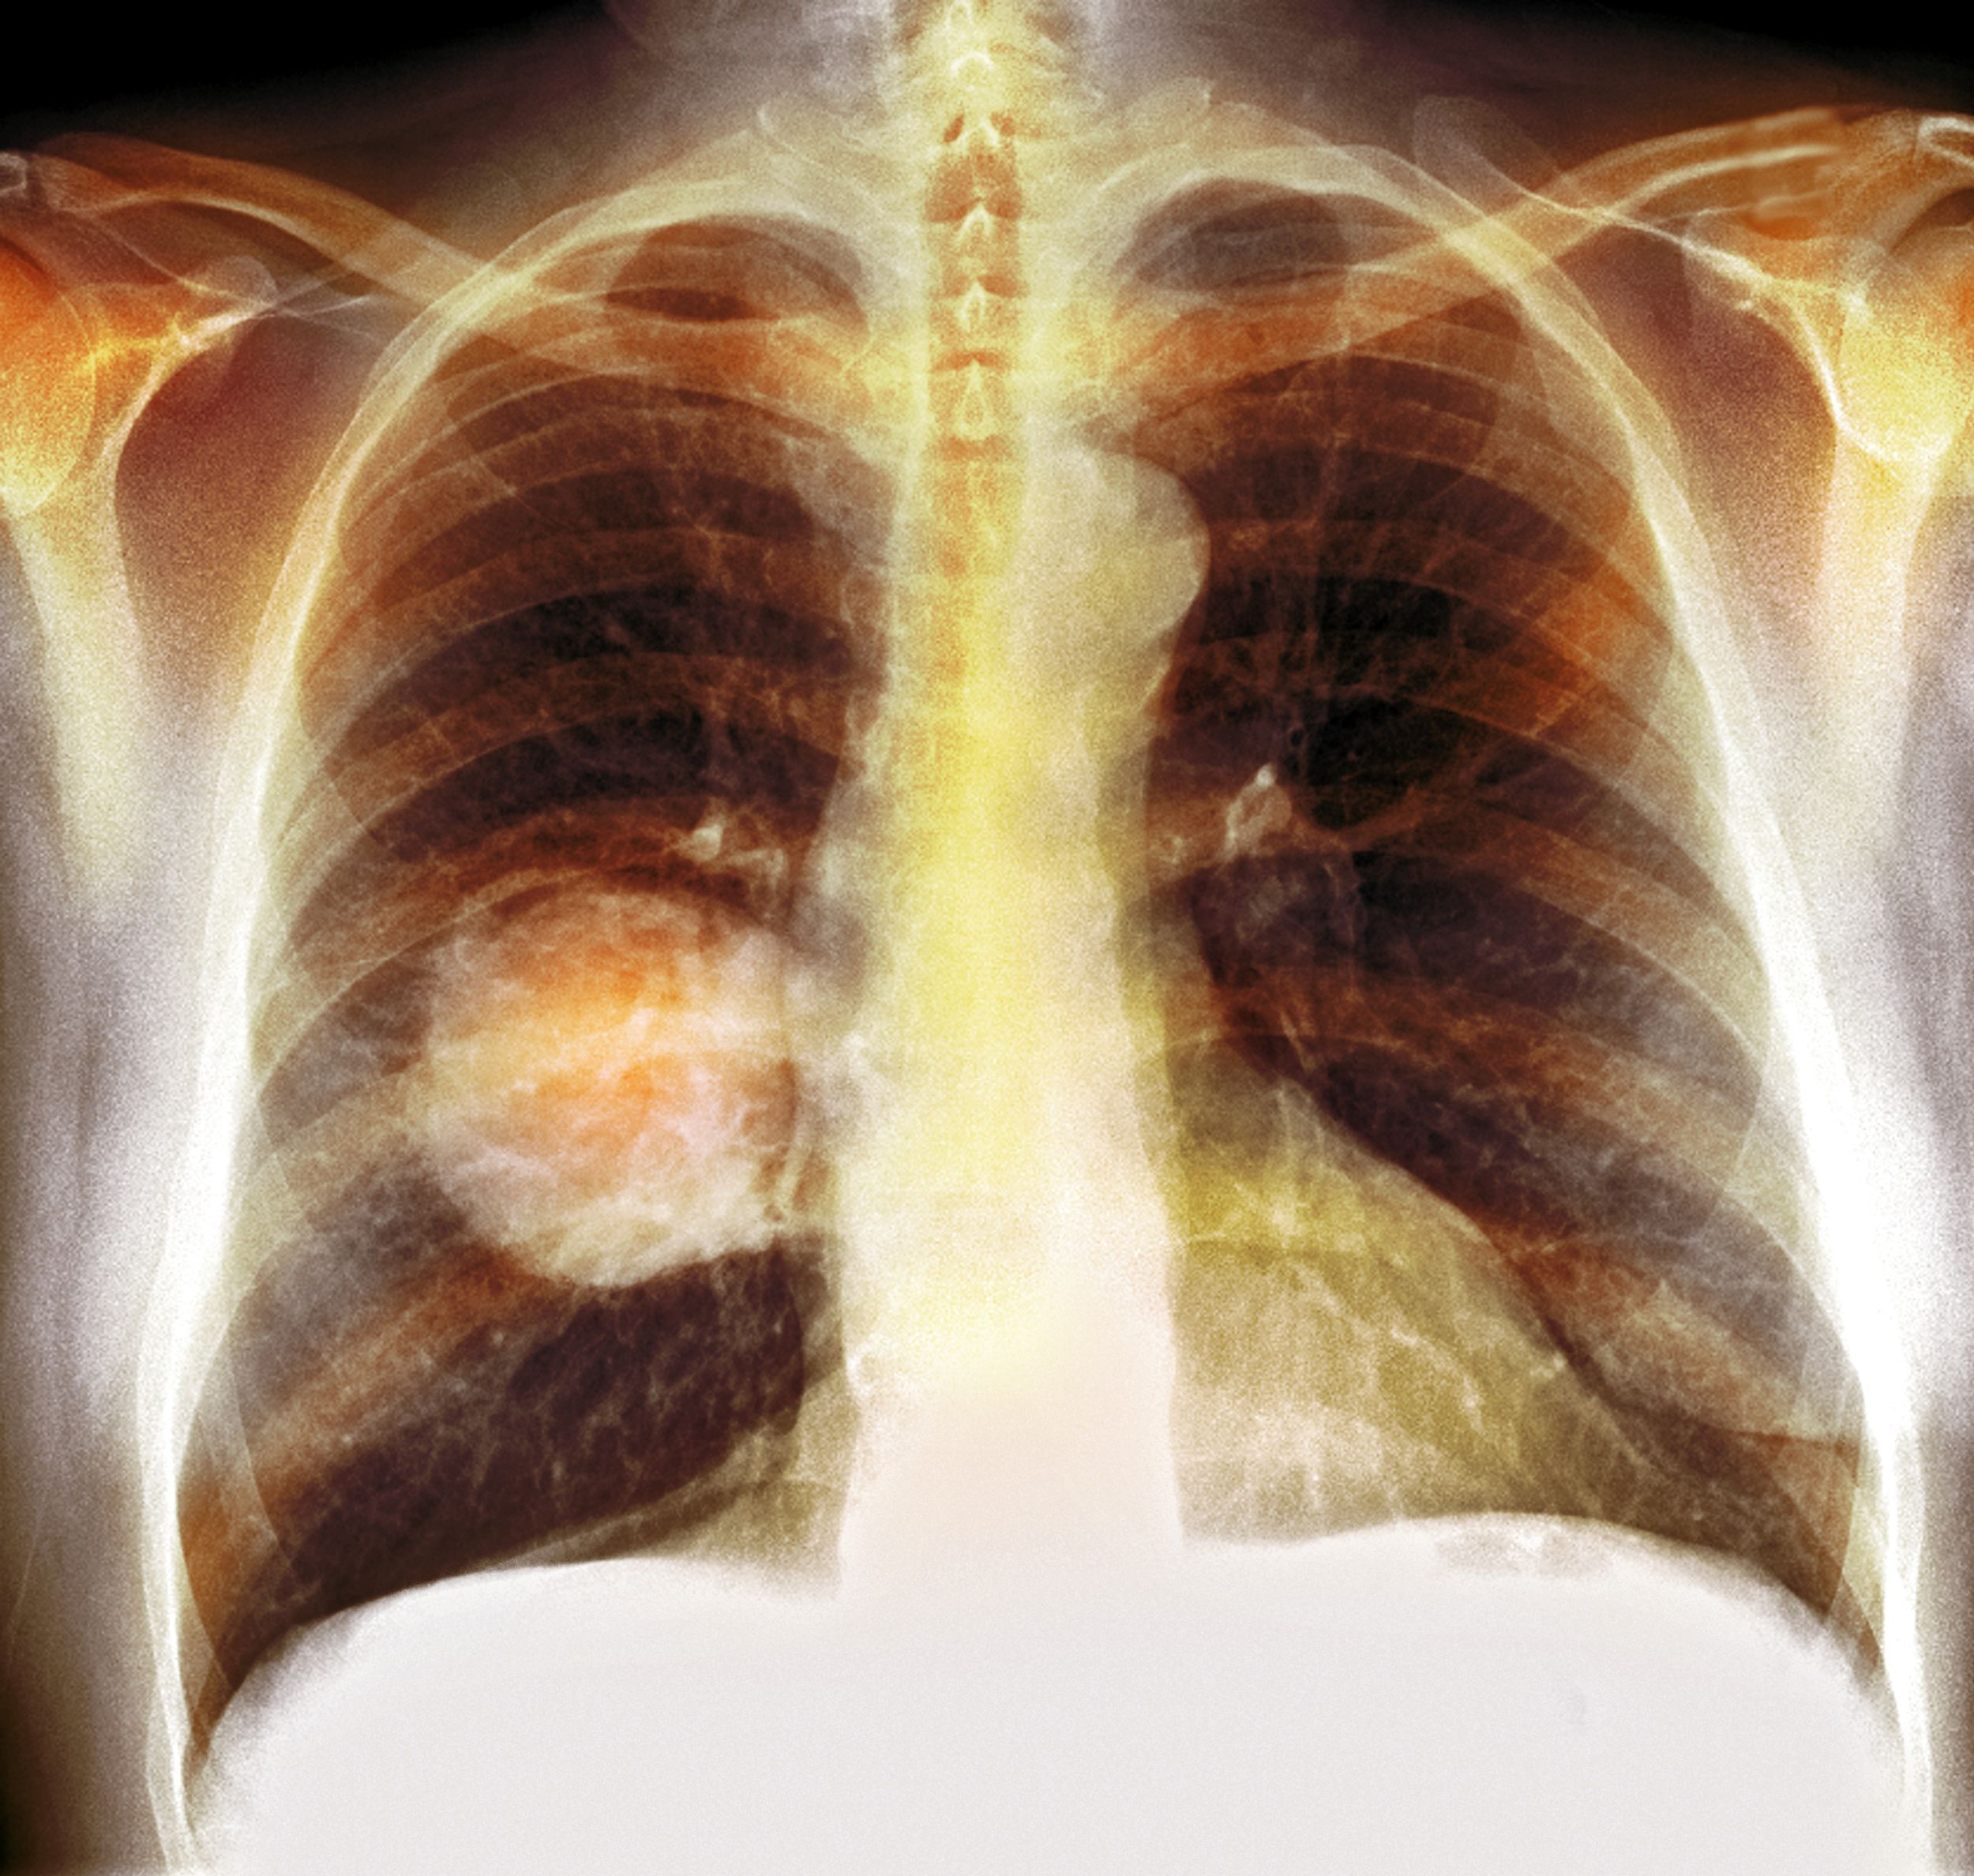 Can hpv cause lung cancer, CANCERUL PULMONAR